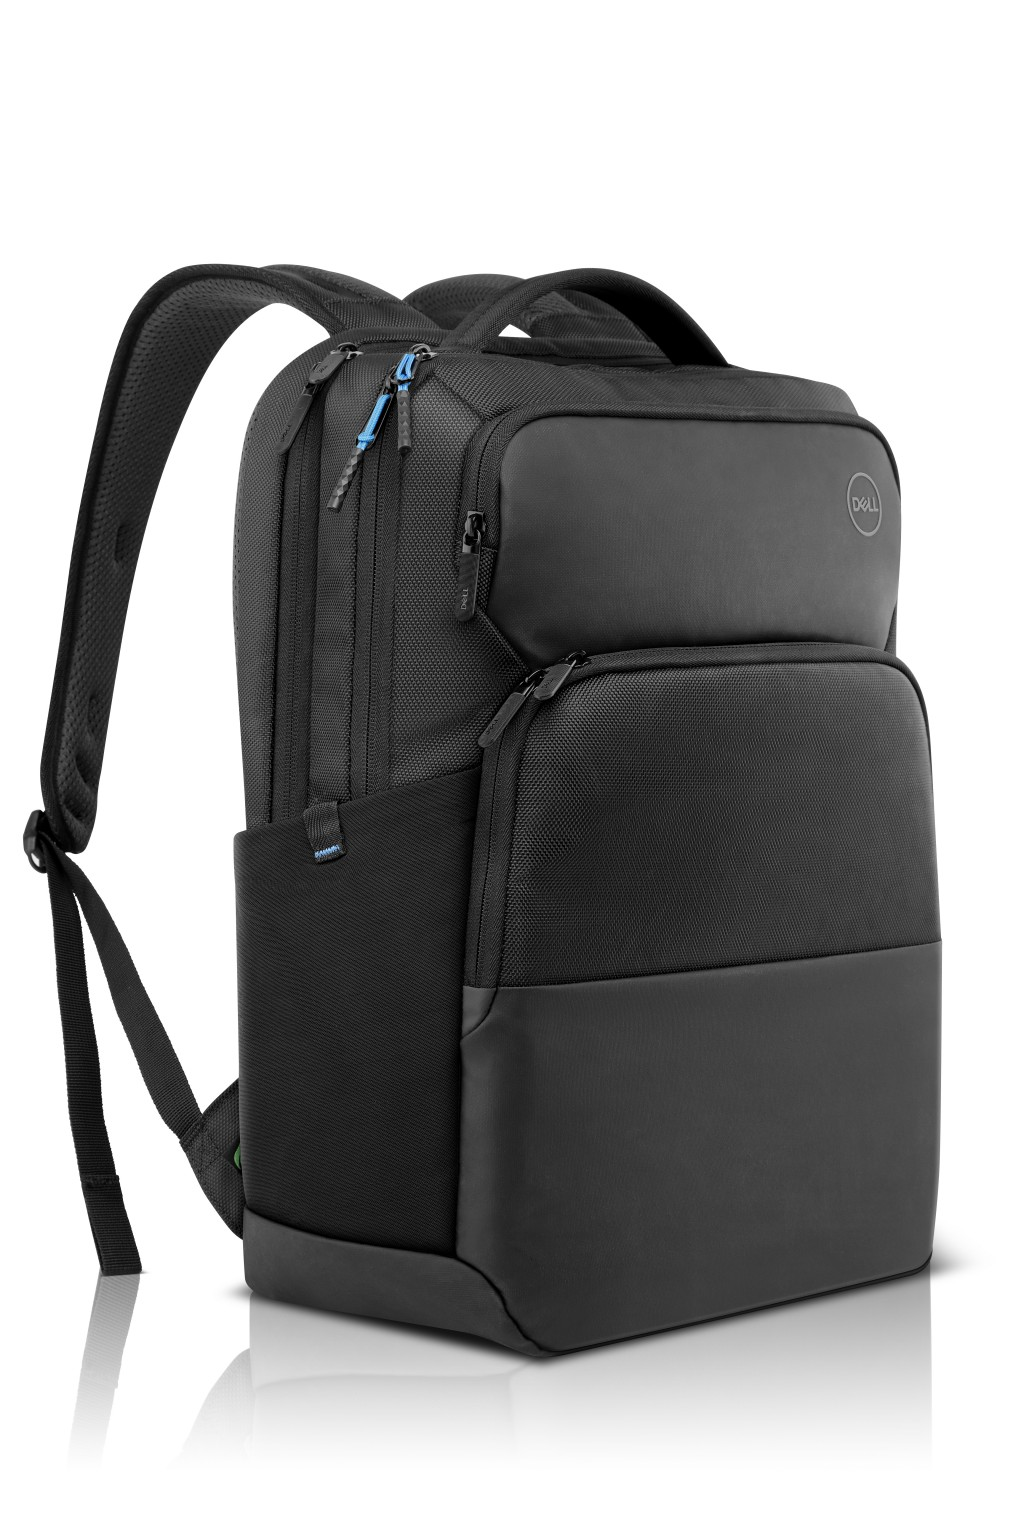 """Dell Pro 460-BCMN Fits up to size 15 """", Black, Backpack"""